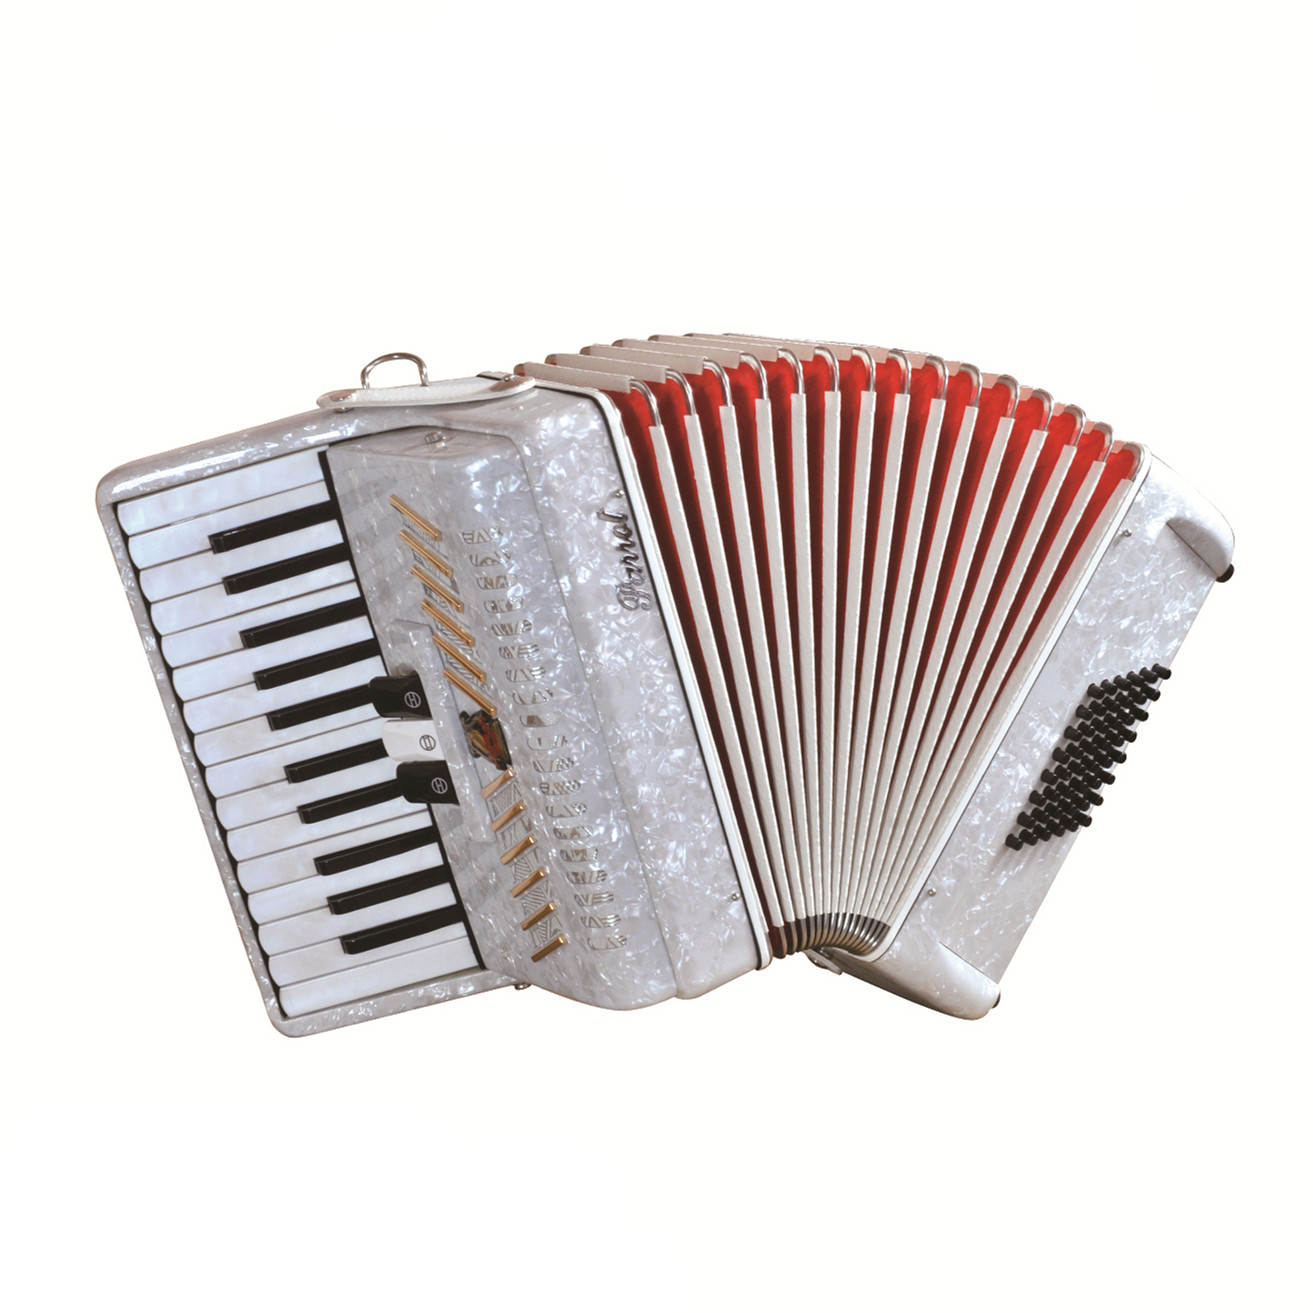 Parrot 26 Keys 48 Bass Piano Accordion With Case And Straps